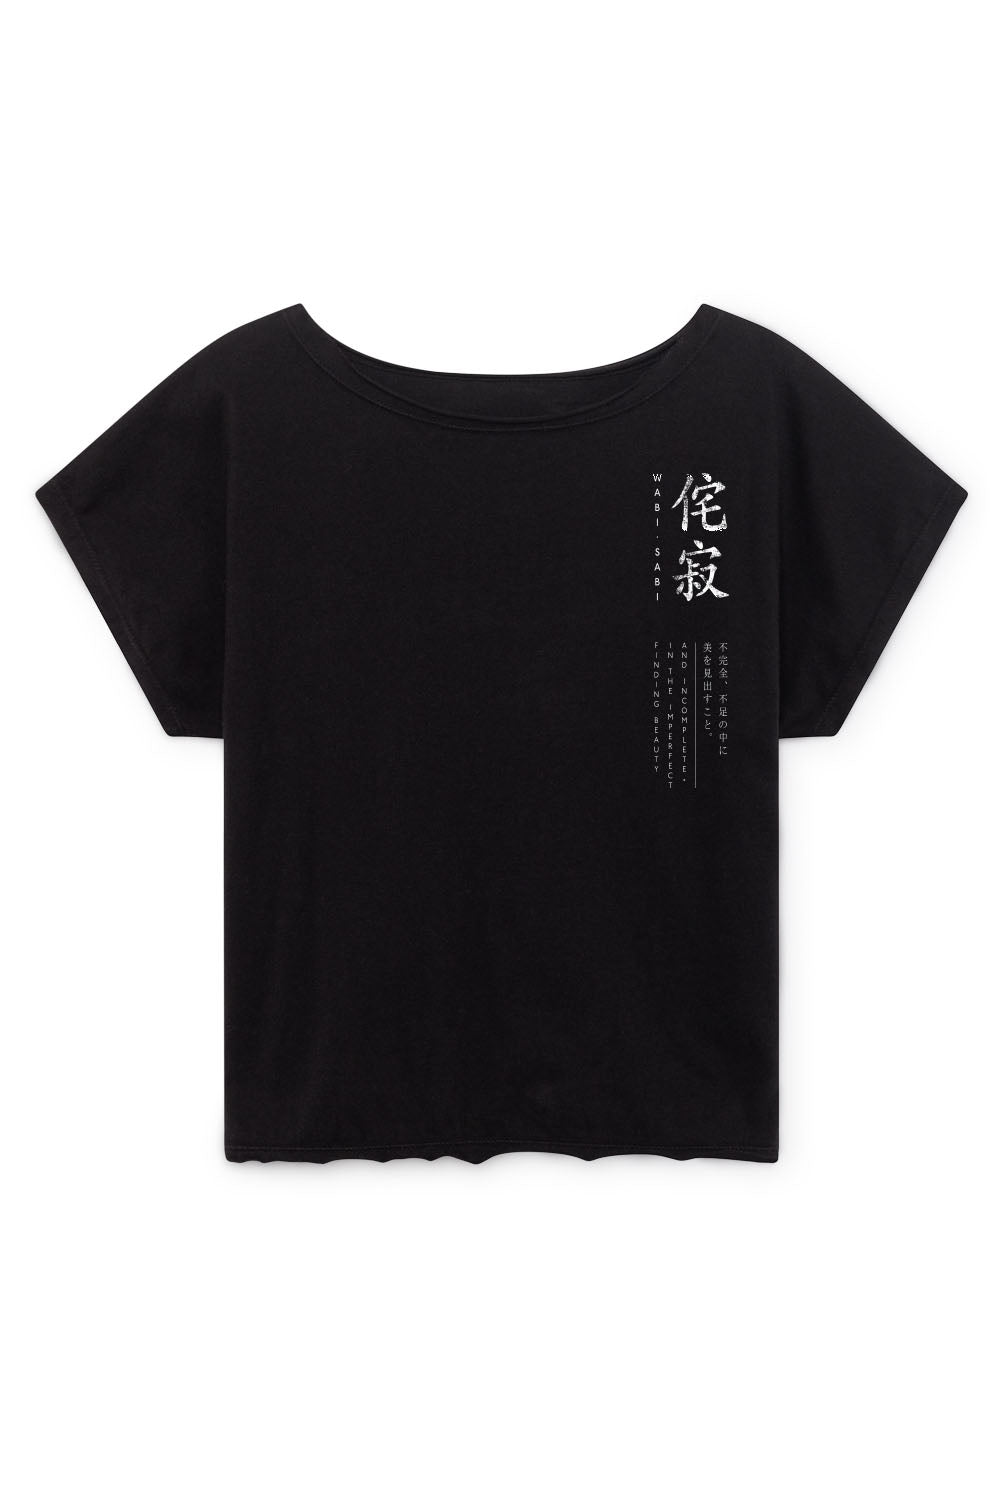 Little Creative Factory Kinari Print Tee- Black